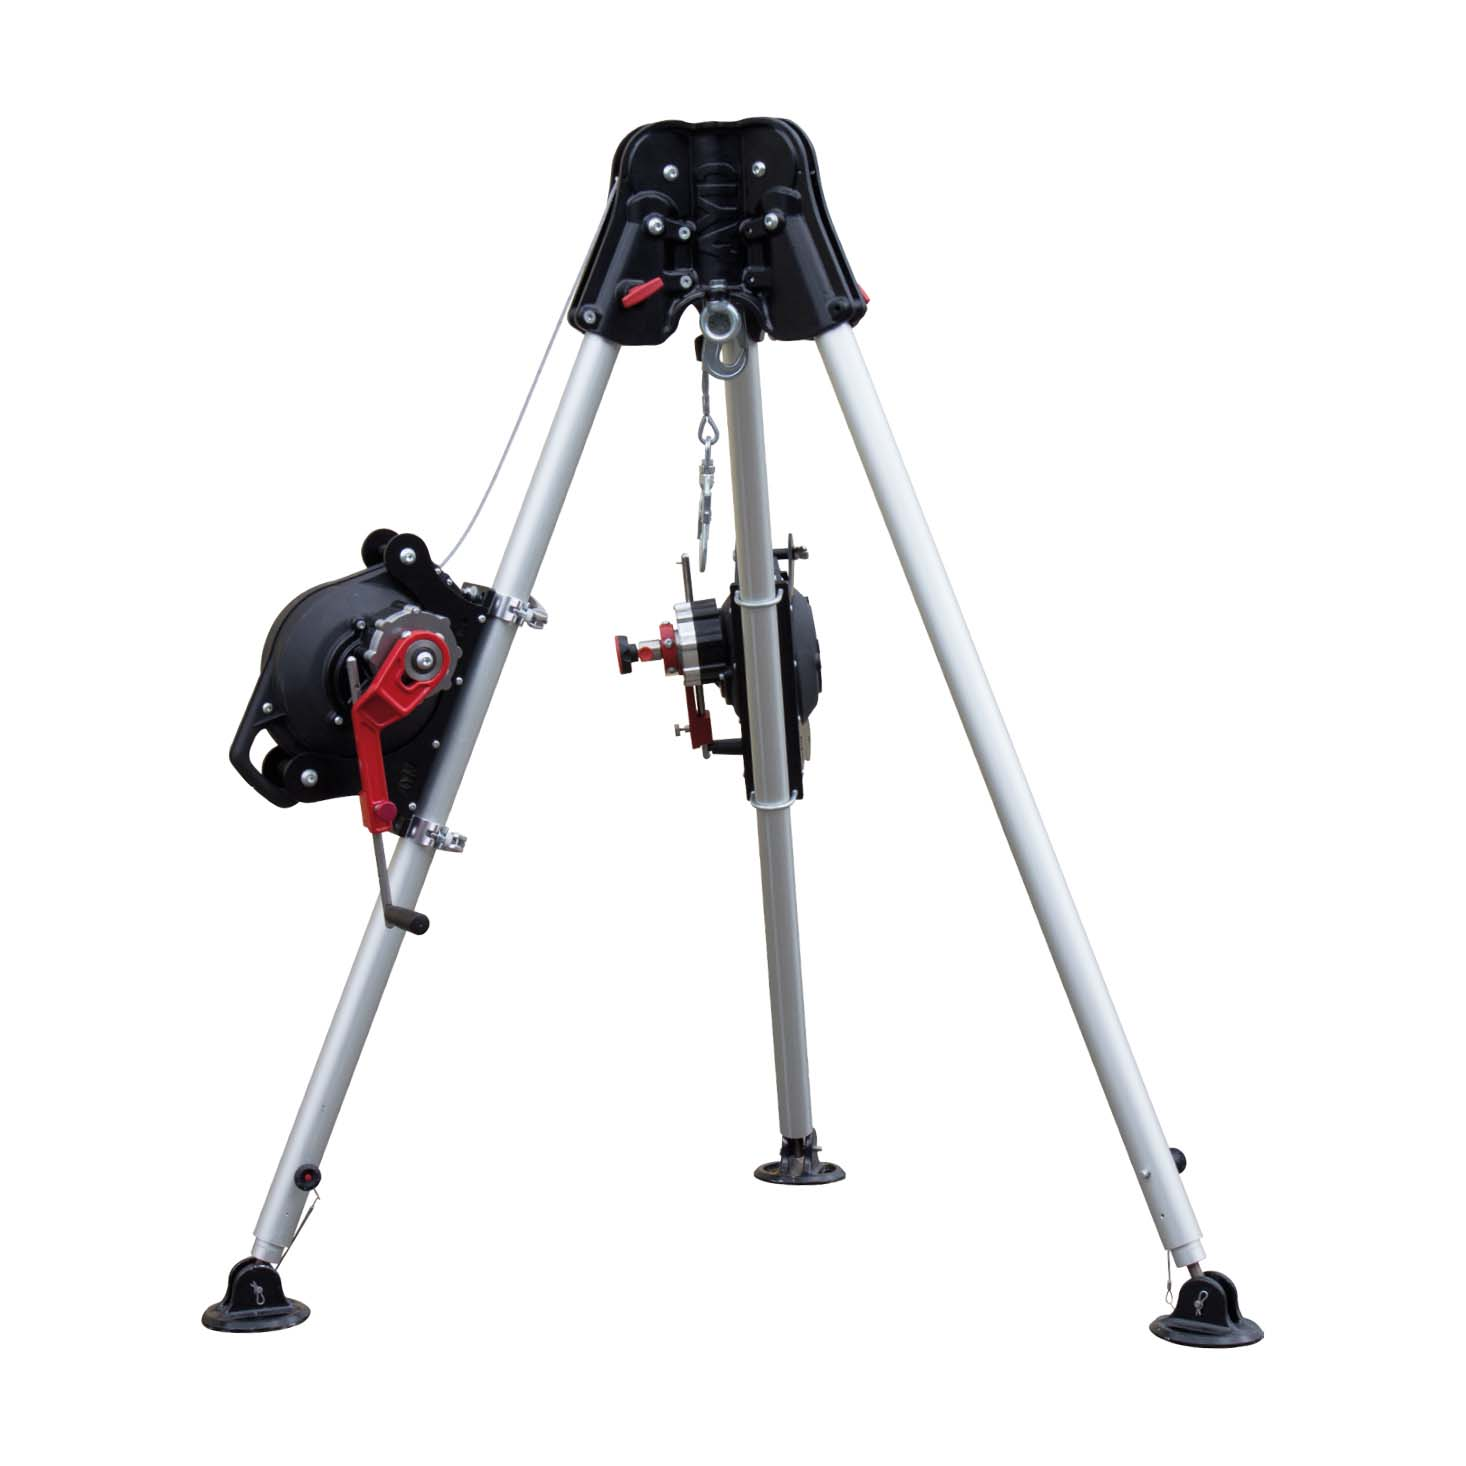 BigBen :: Folding Tripod & Winch